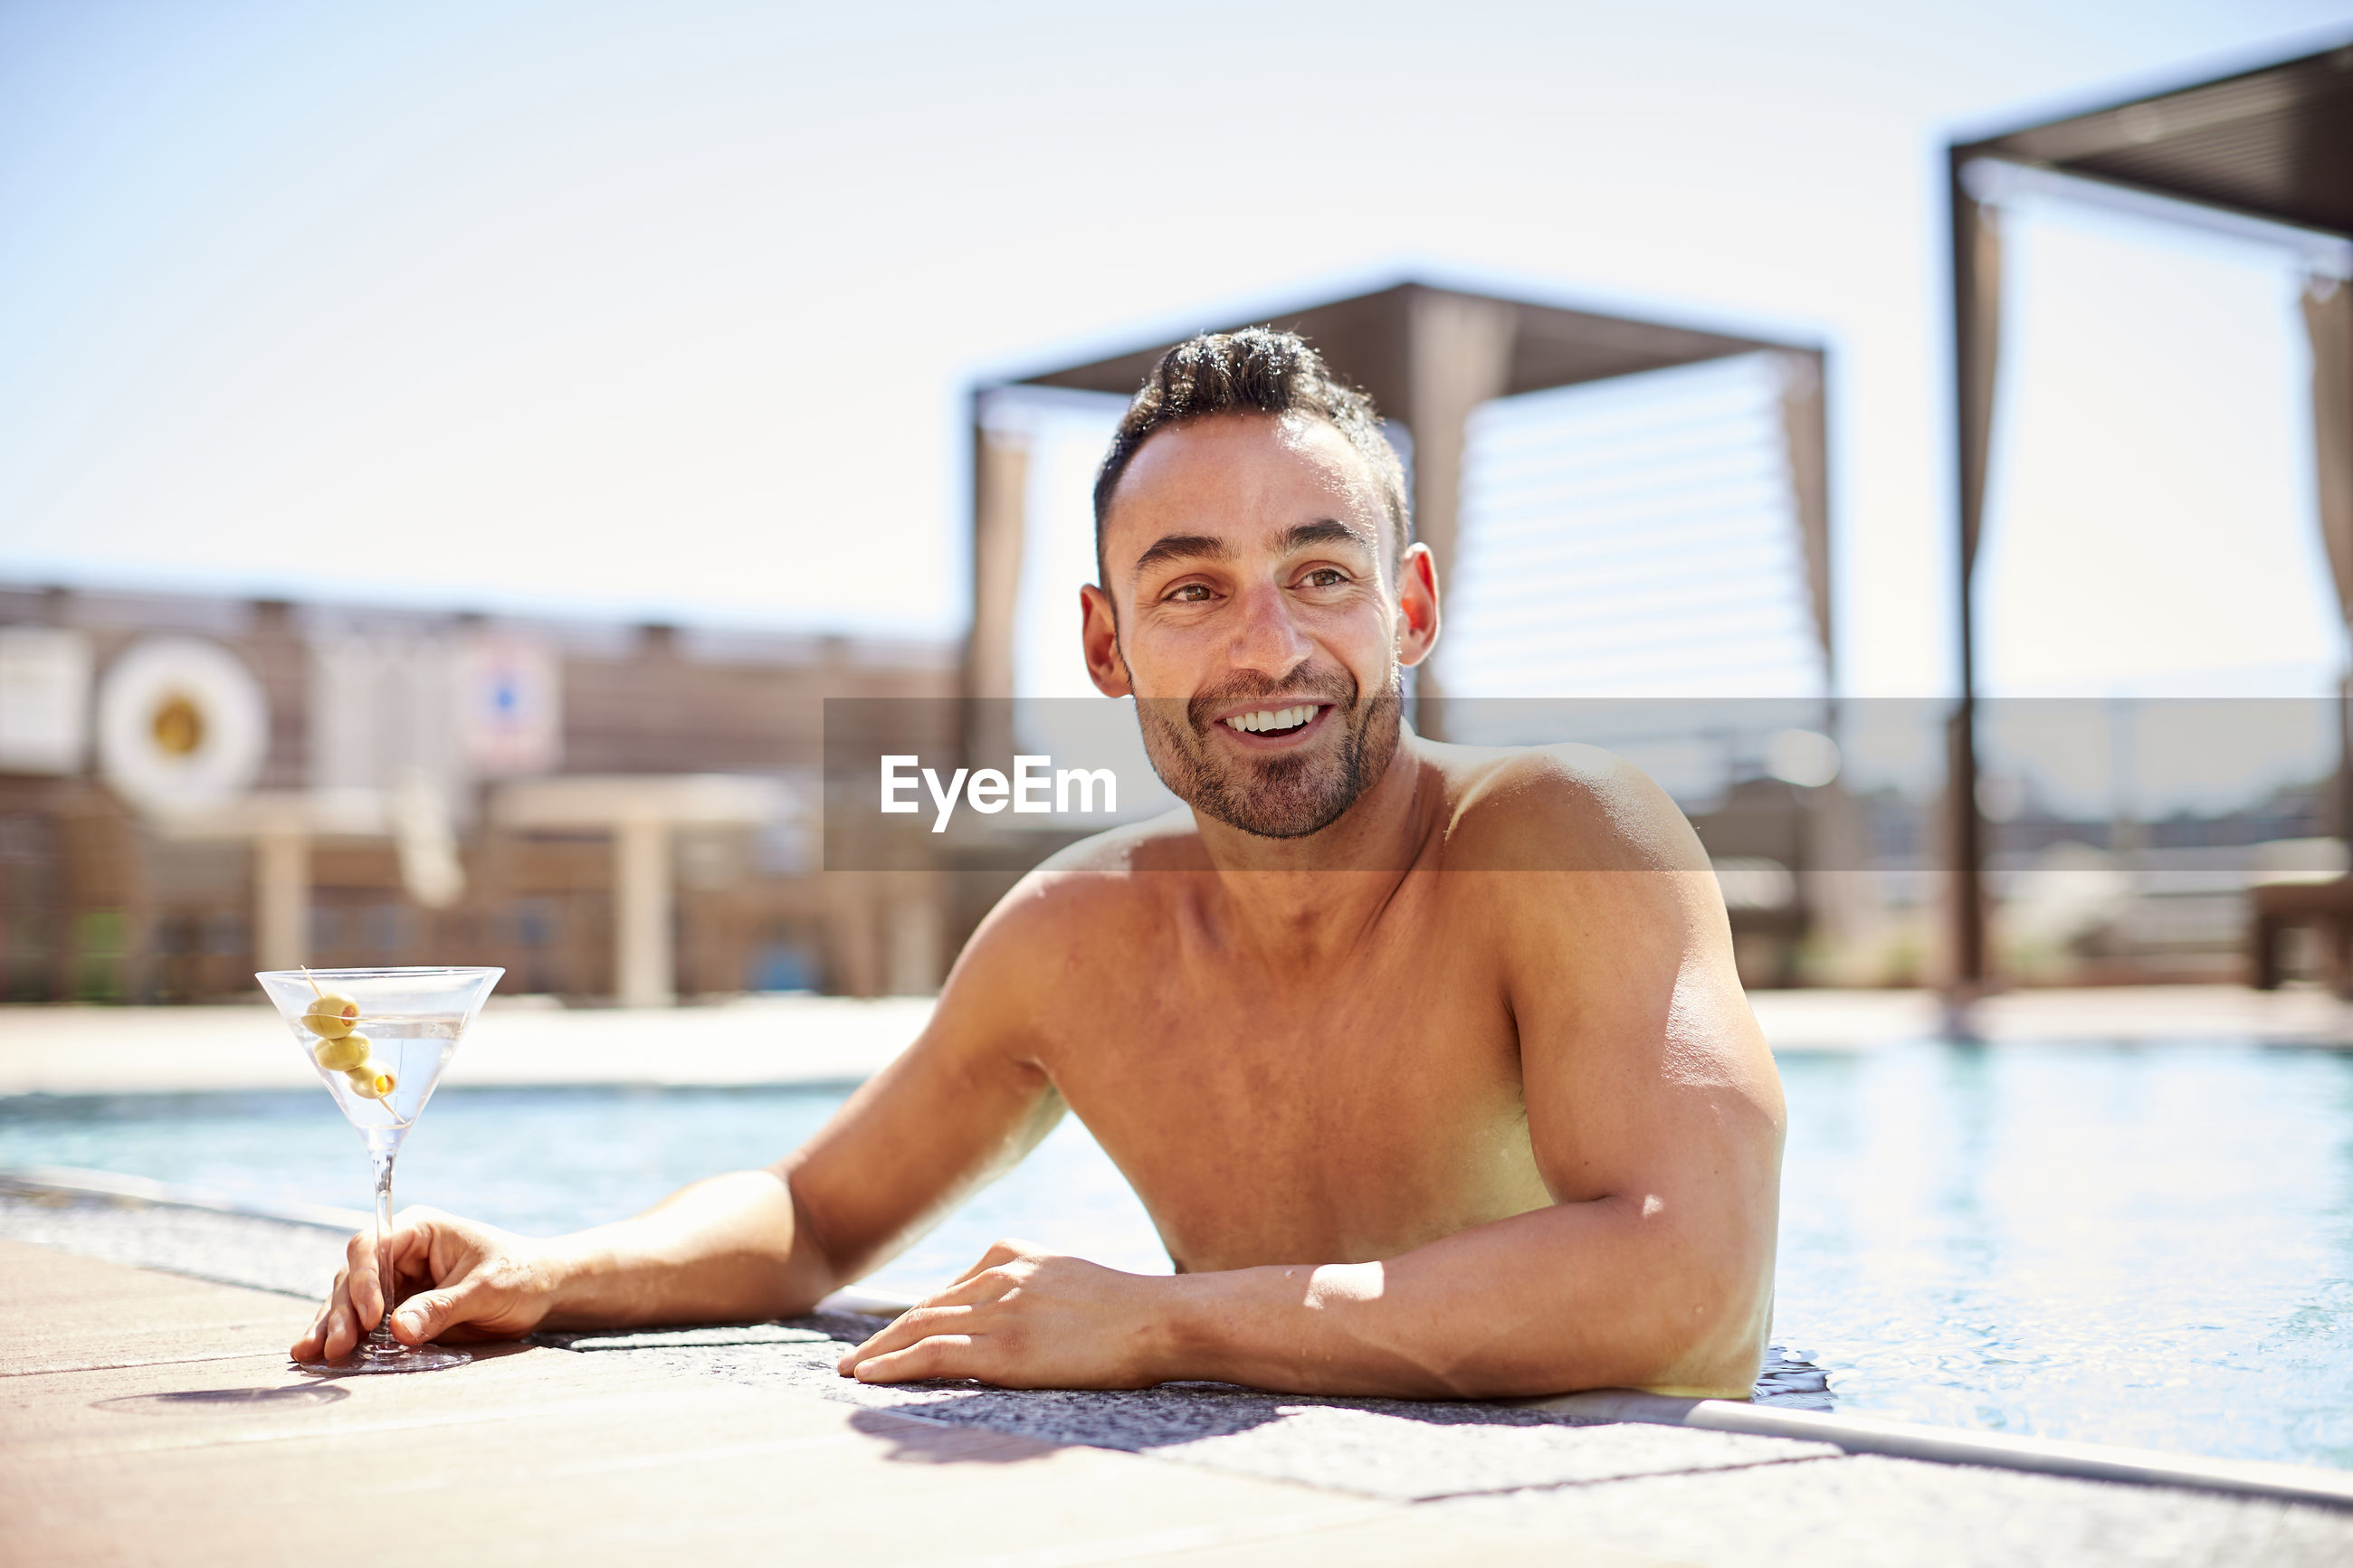 PORTRAIT OF SHIRTLESS MAN WITH WOMAN AT SWIMMING POOL